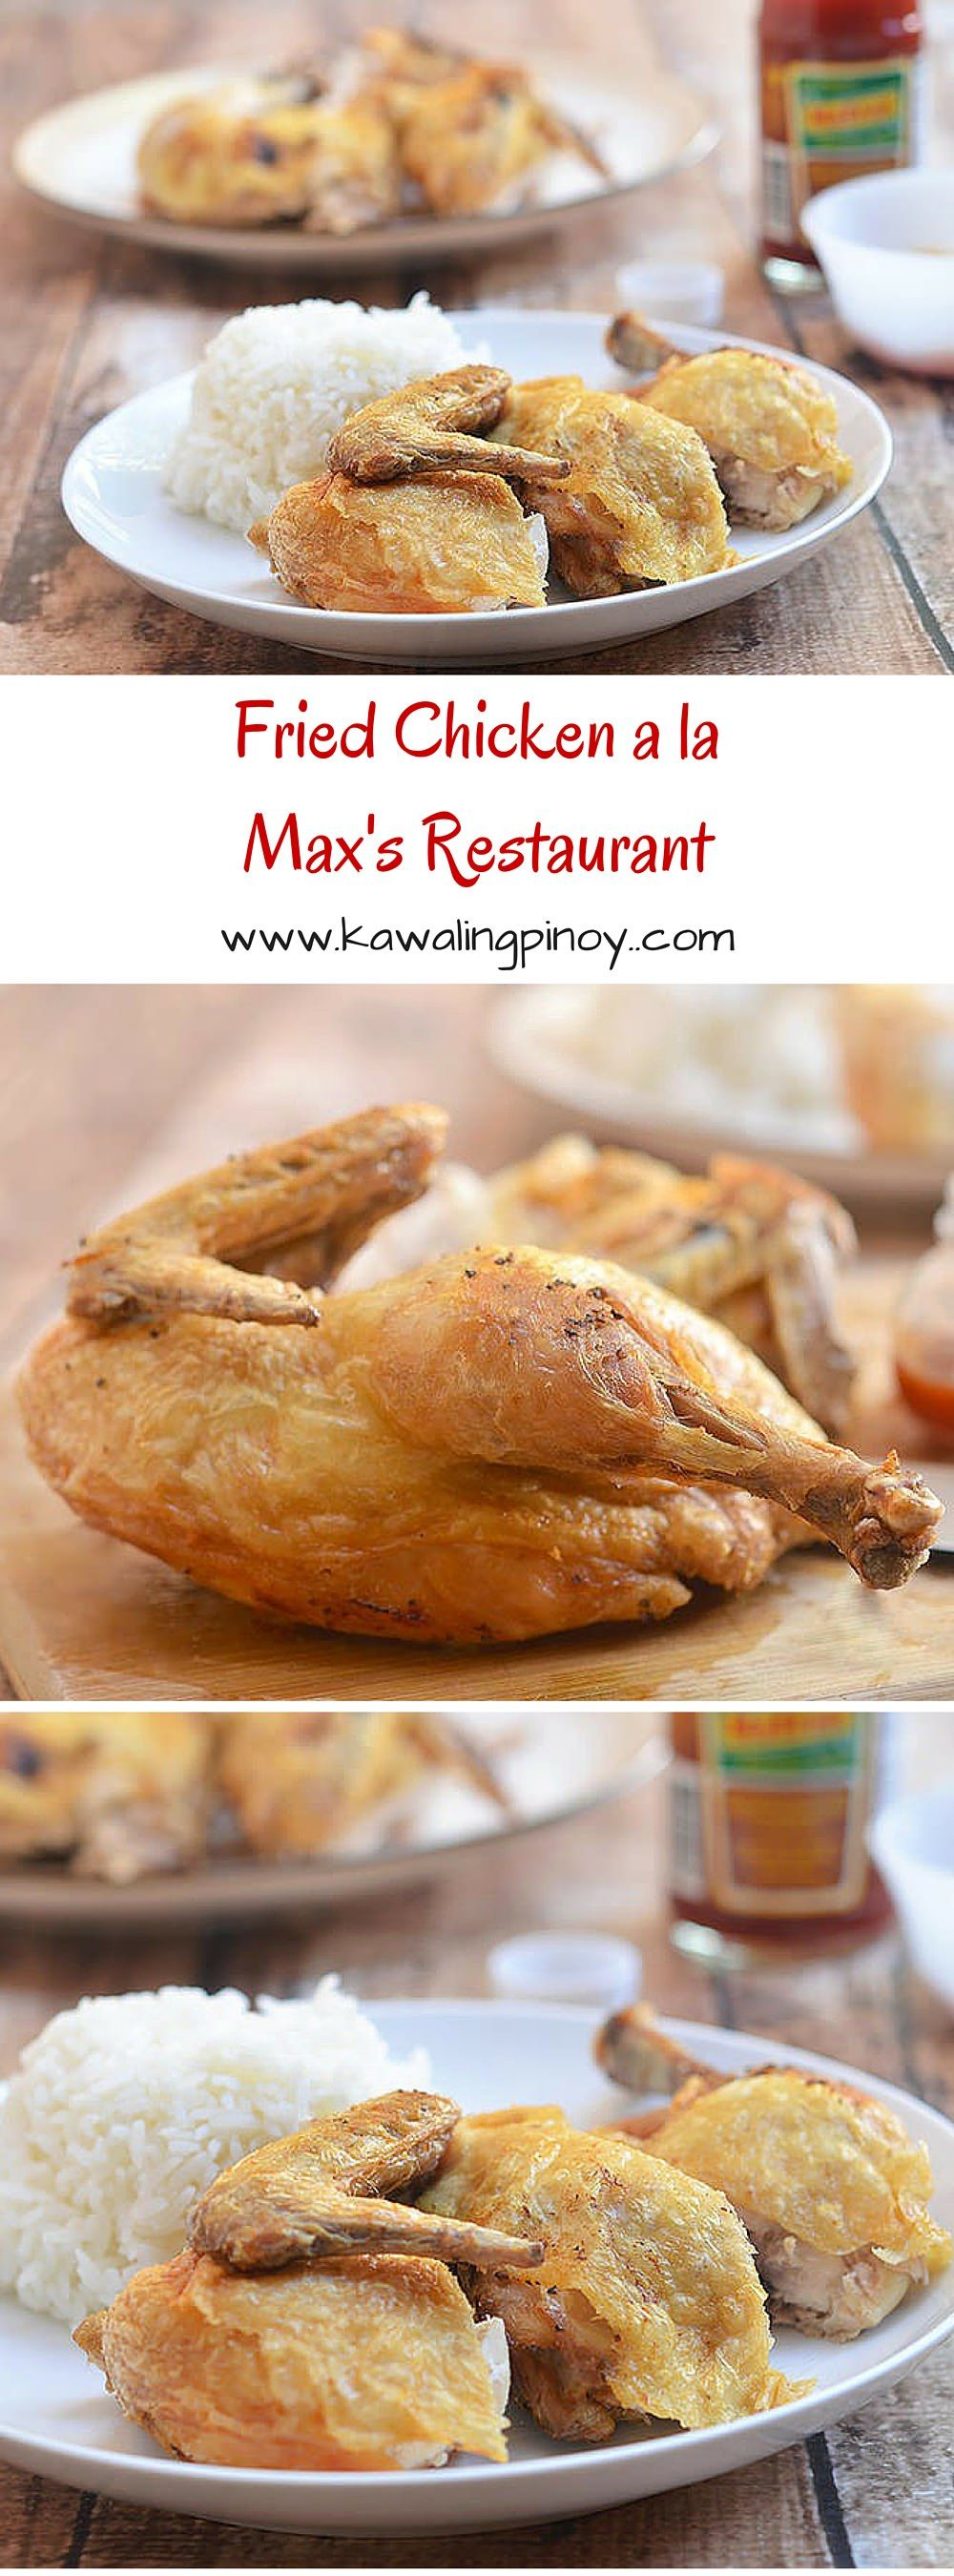 Crisp, juicy and flavorful, this Fried Chicken a la Max's Restaurant is delicious to the bone!